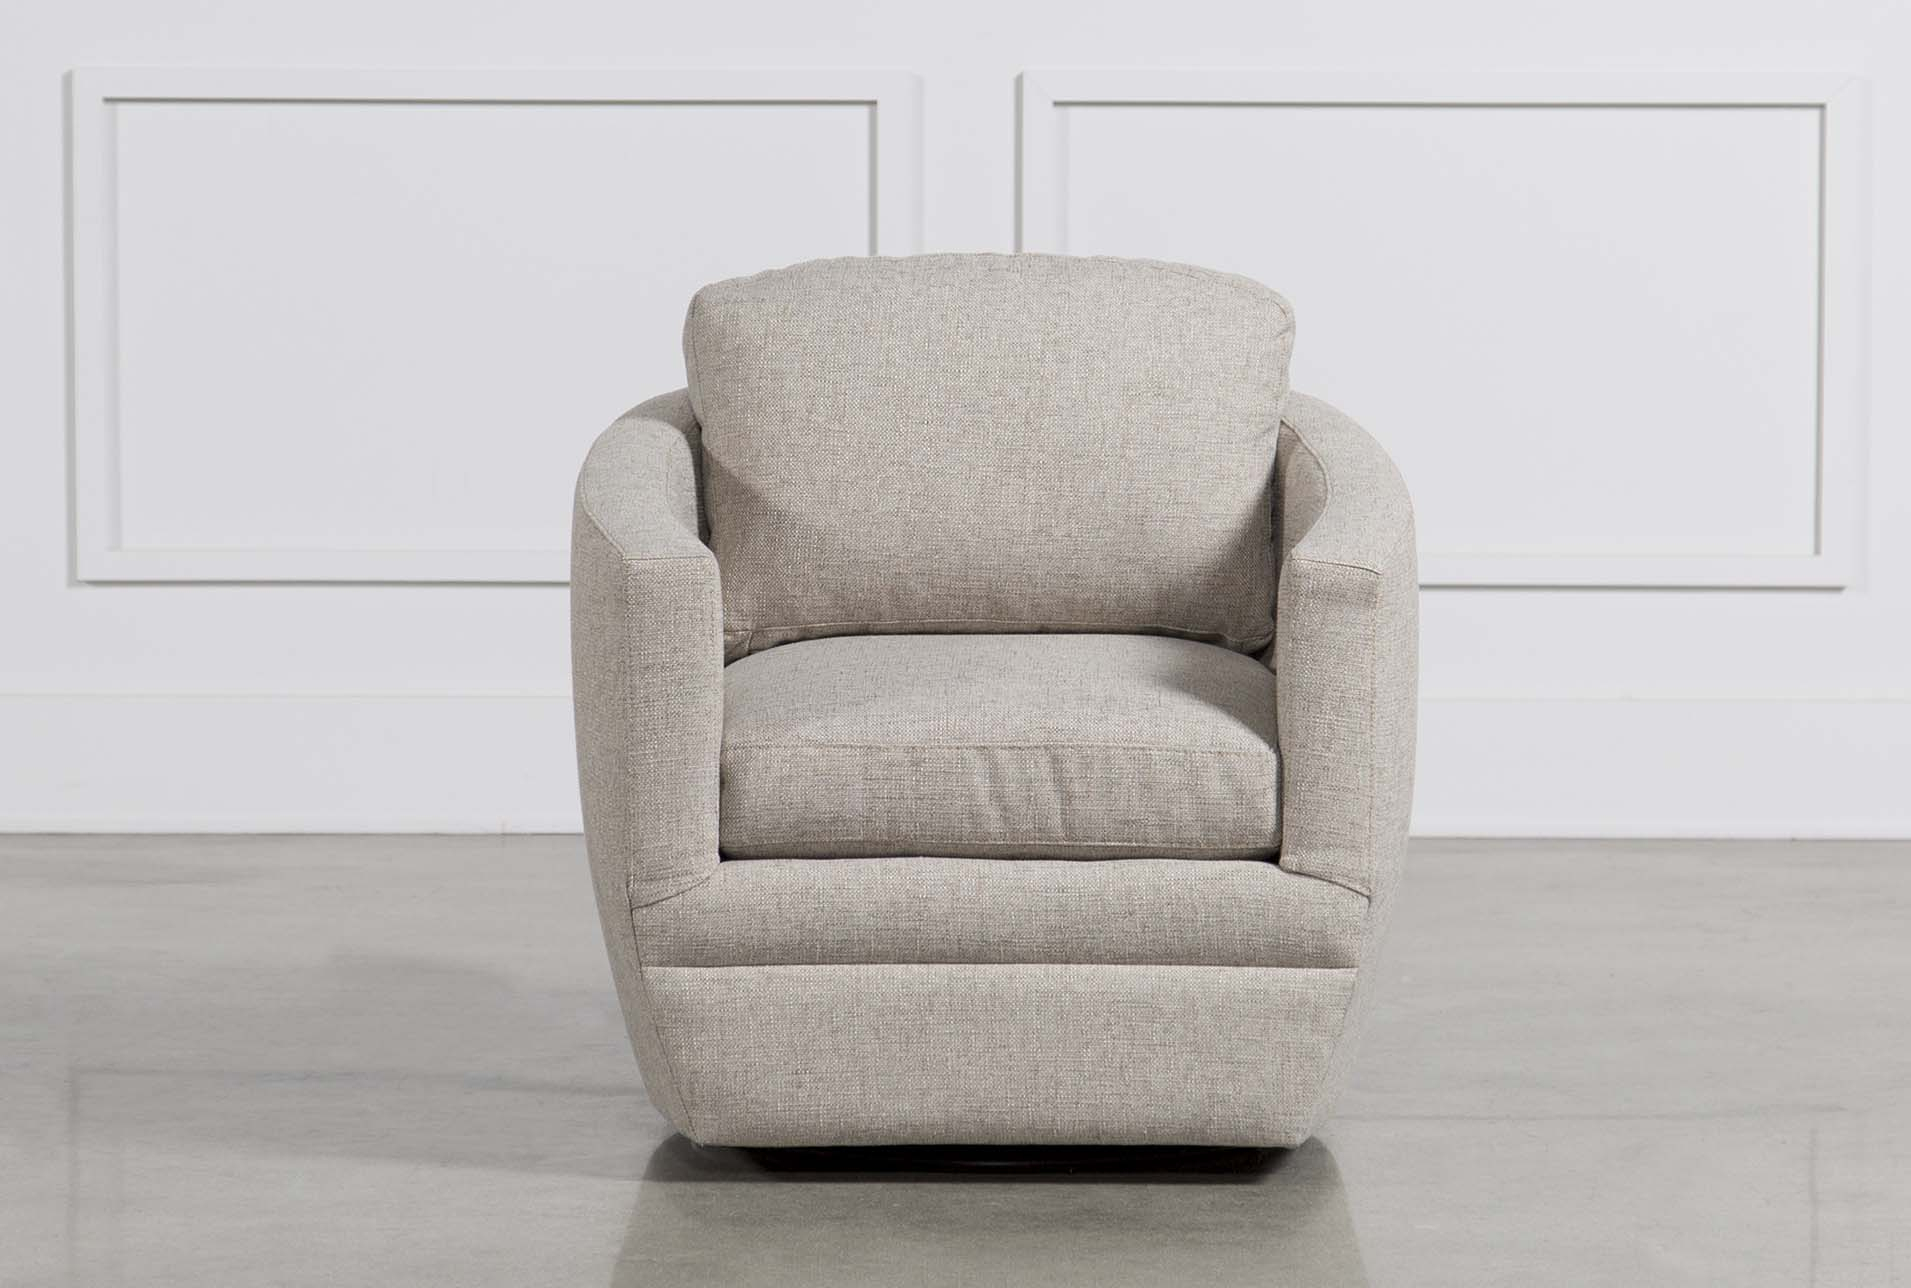 Chadwick Gunmetal Swivel Chair | Products | Pinterest | Swivel Chair Intended For Chadwick Gunmetal Swivel Chairs (View 2 of 25)